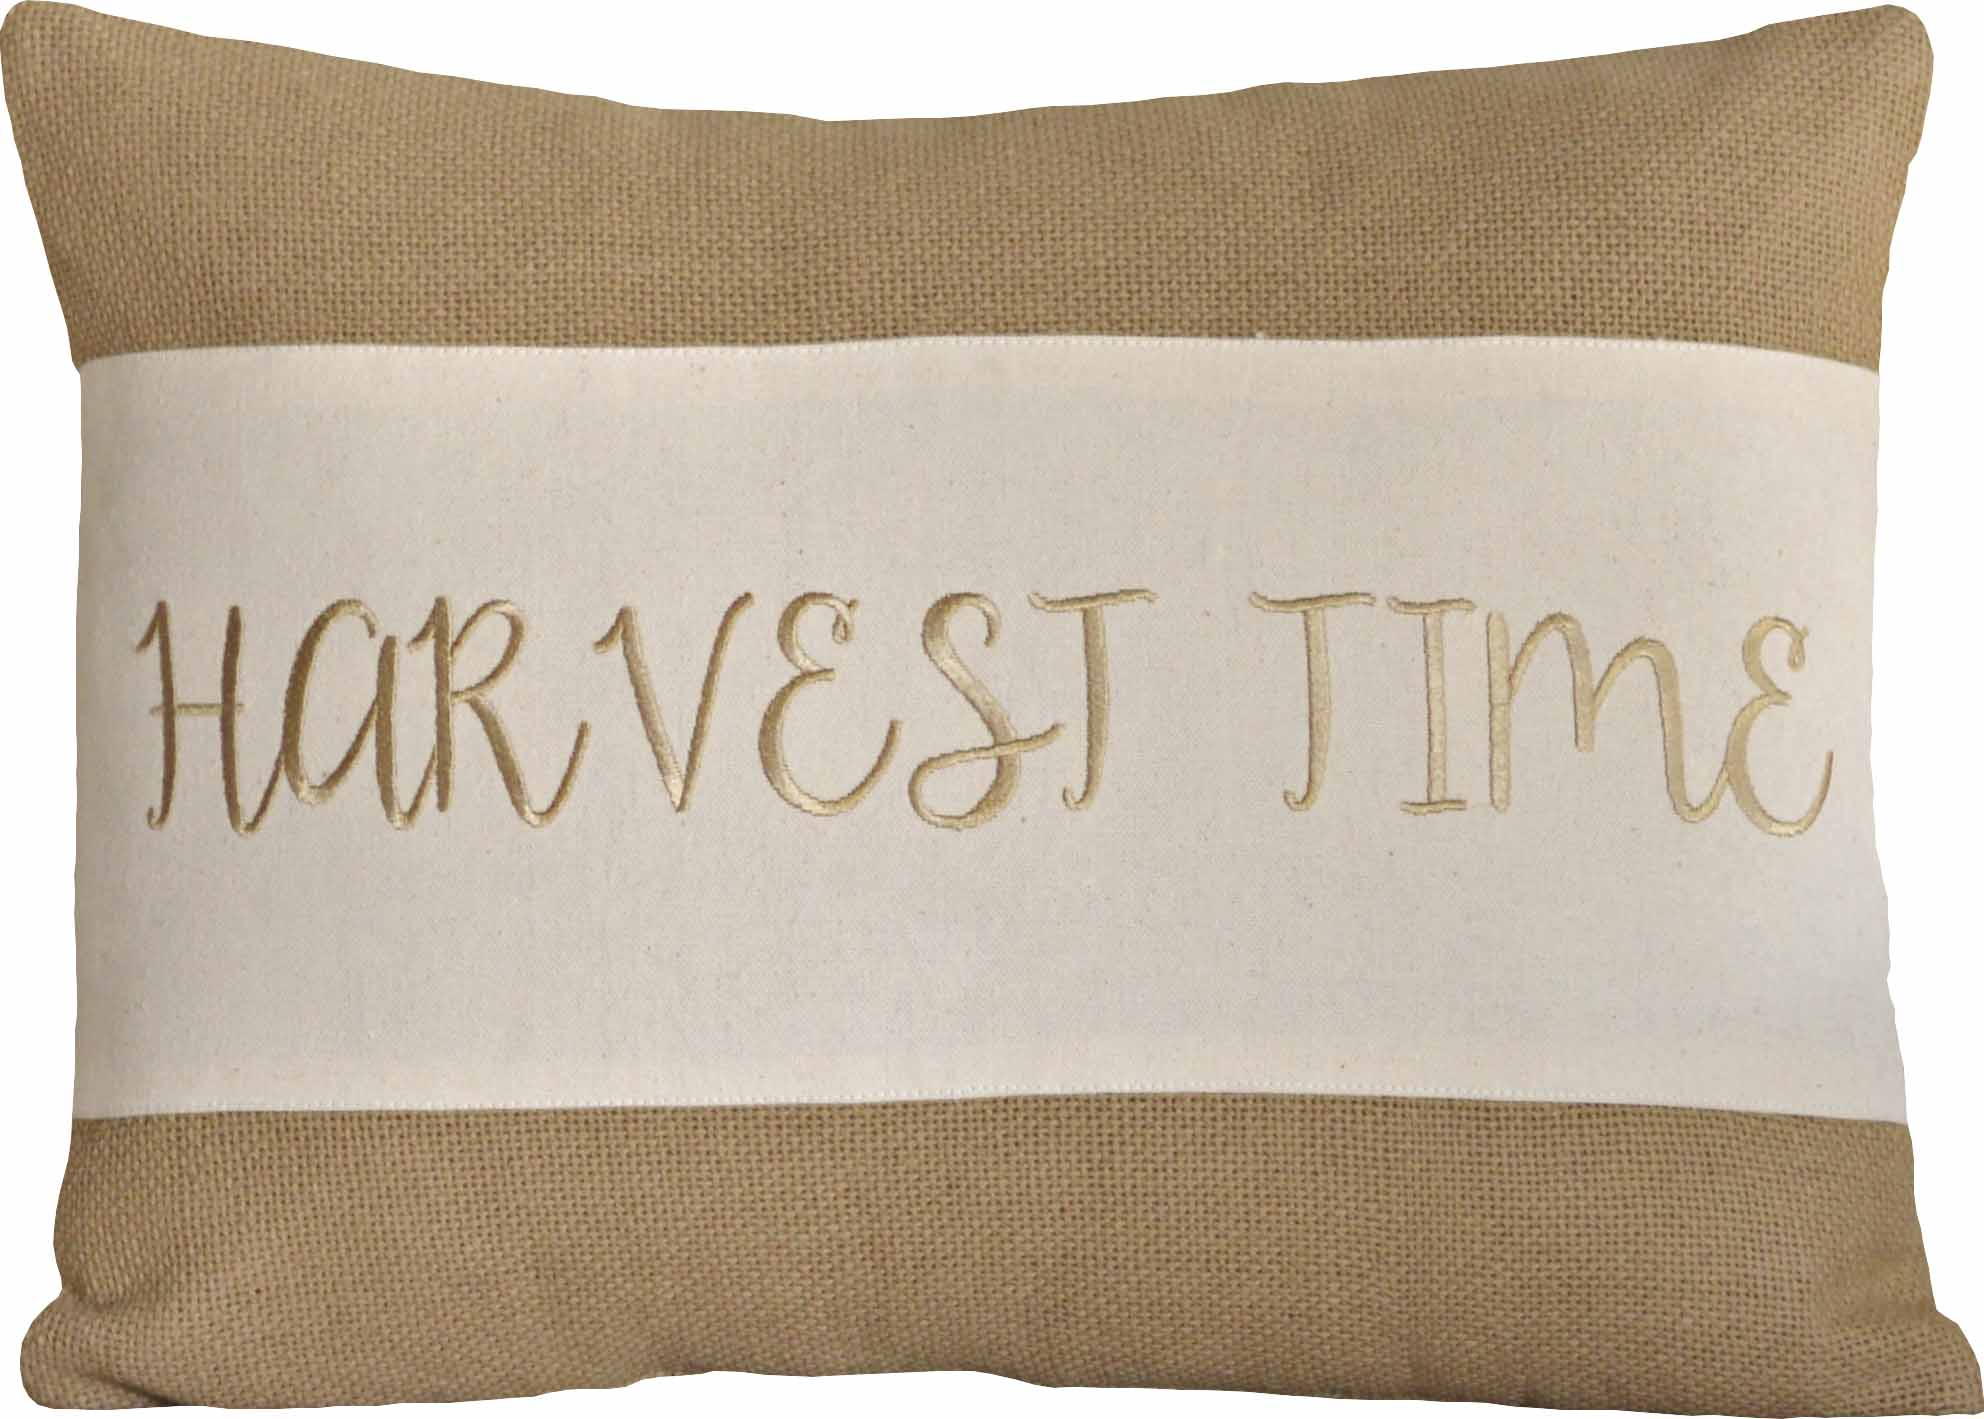 Harvest Time Pillow